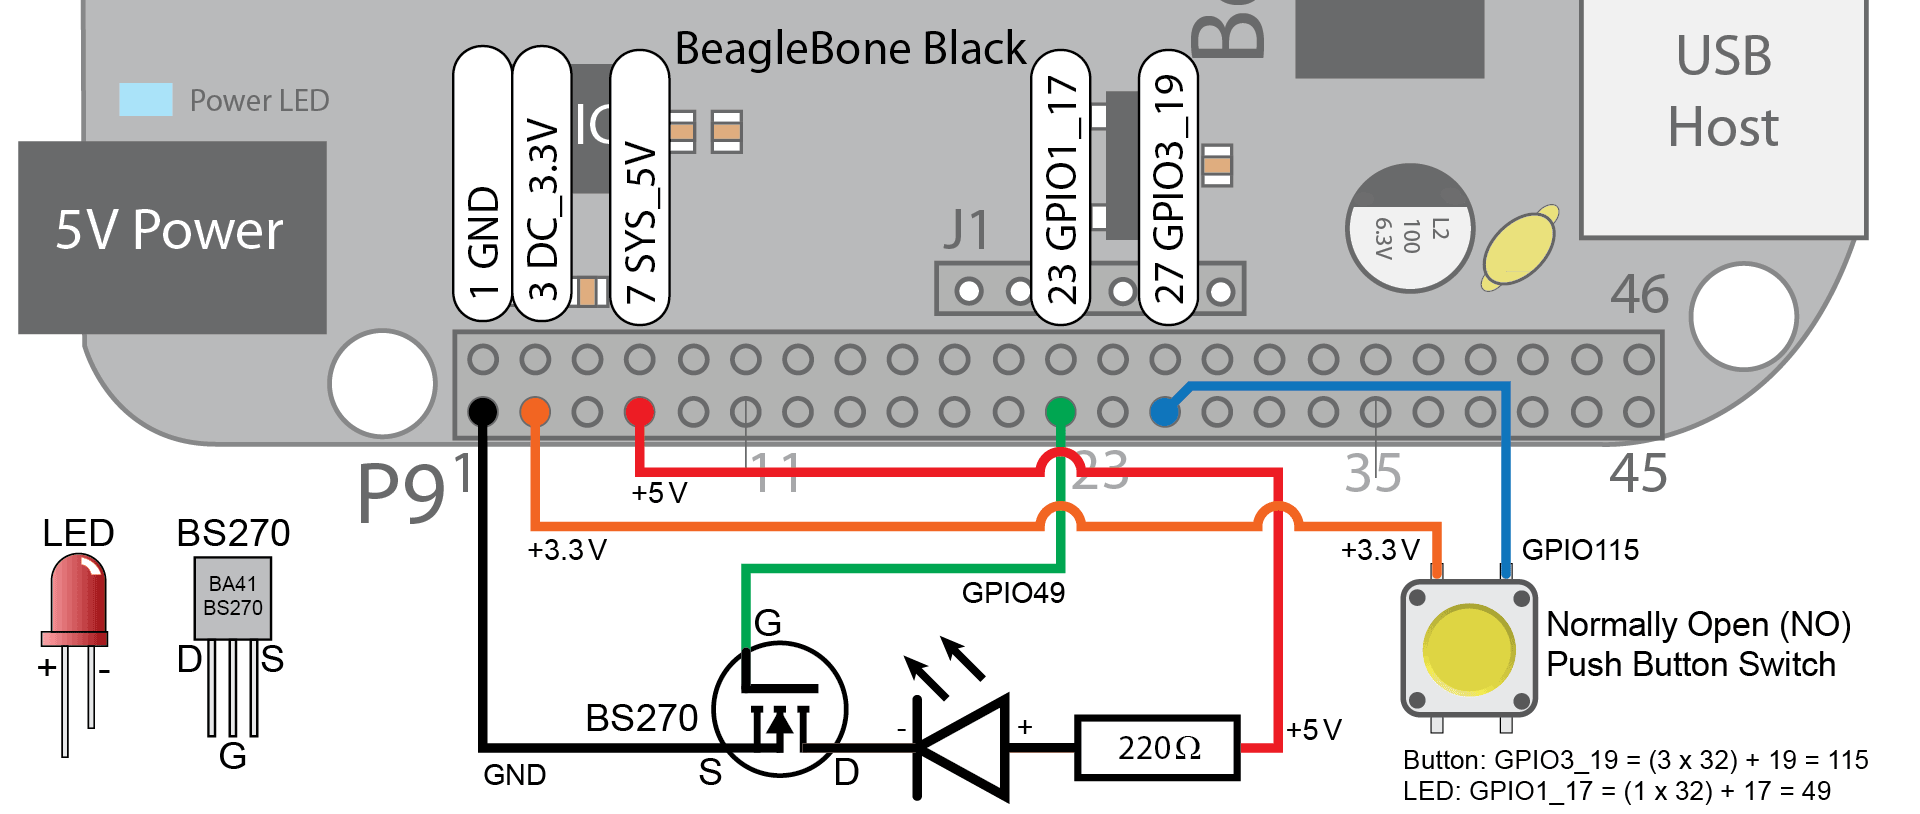 Writing A Linux Loadable Kernel Module Lkm Interfacing To Gpios Circuit Boardmoney Counting Machine Boardled Board Always Be Very Careful That You Wire Circuits Like These Correctly Mistake May Destroy Your Beaglebone